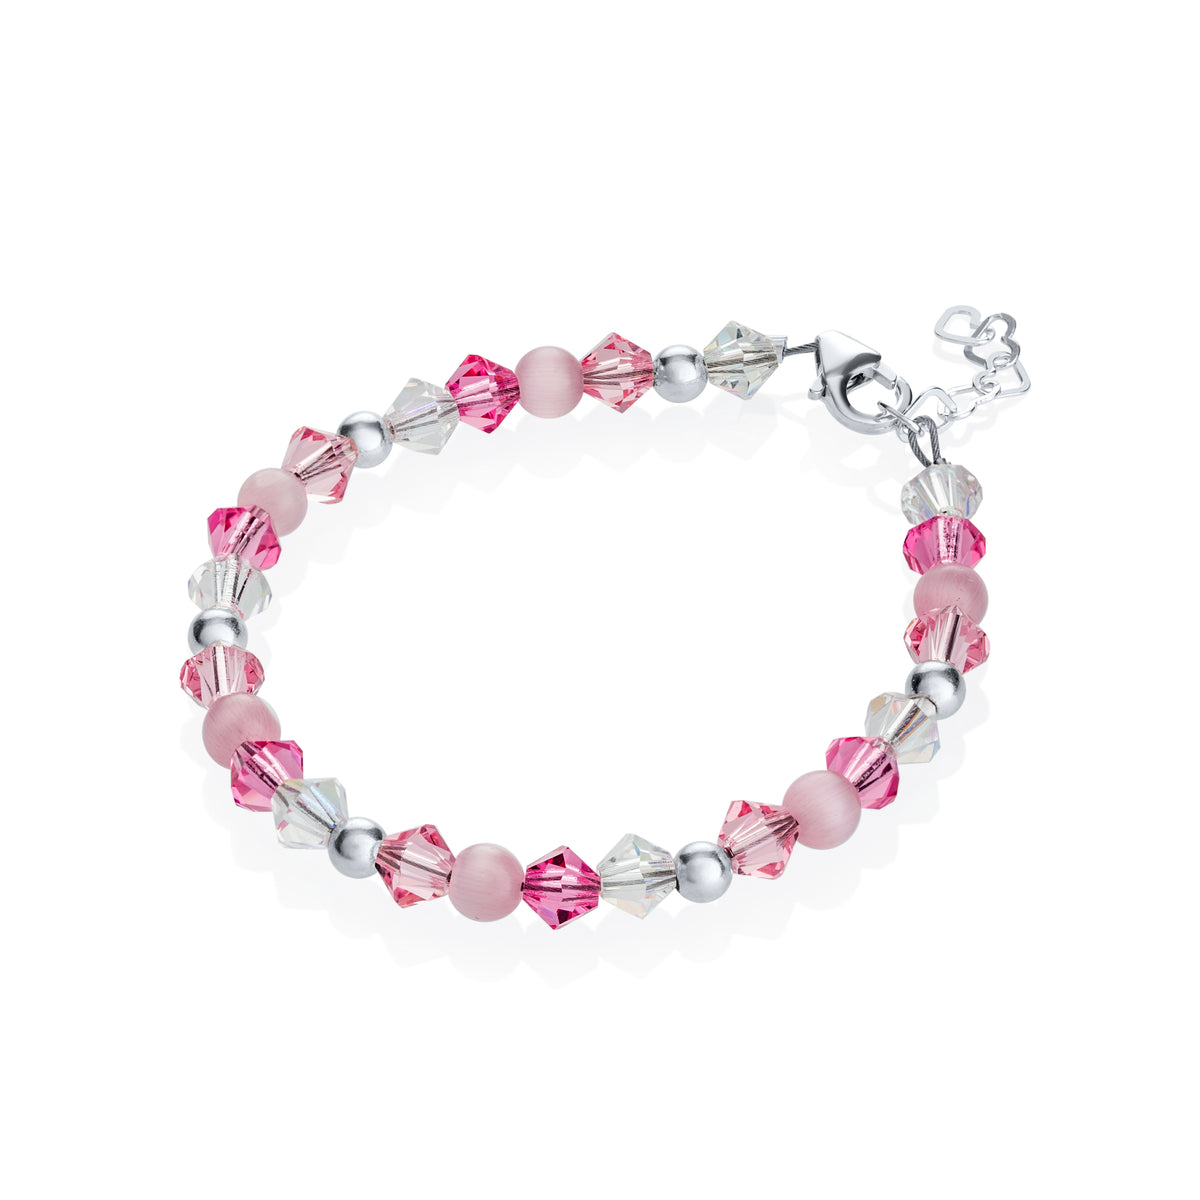 Crystal Dream Pink Crystals and Beads Bracelet